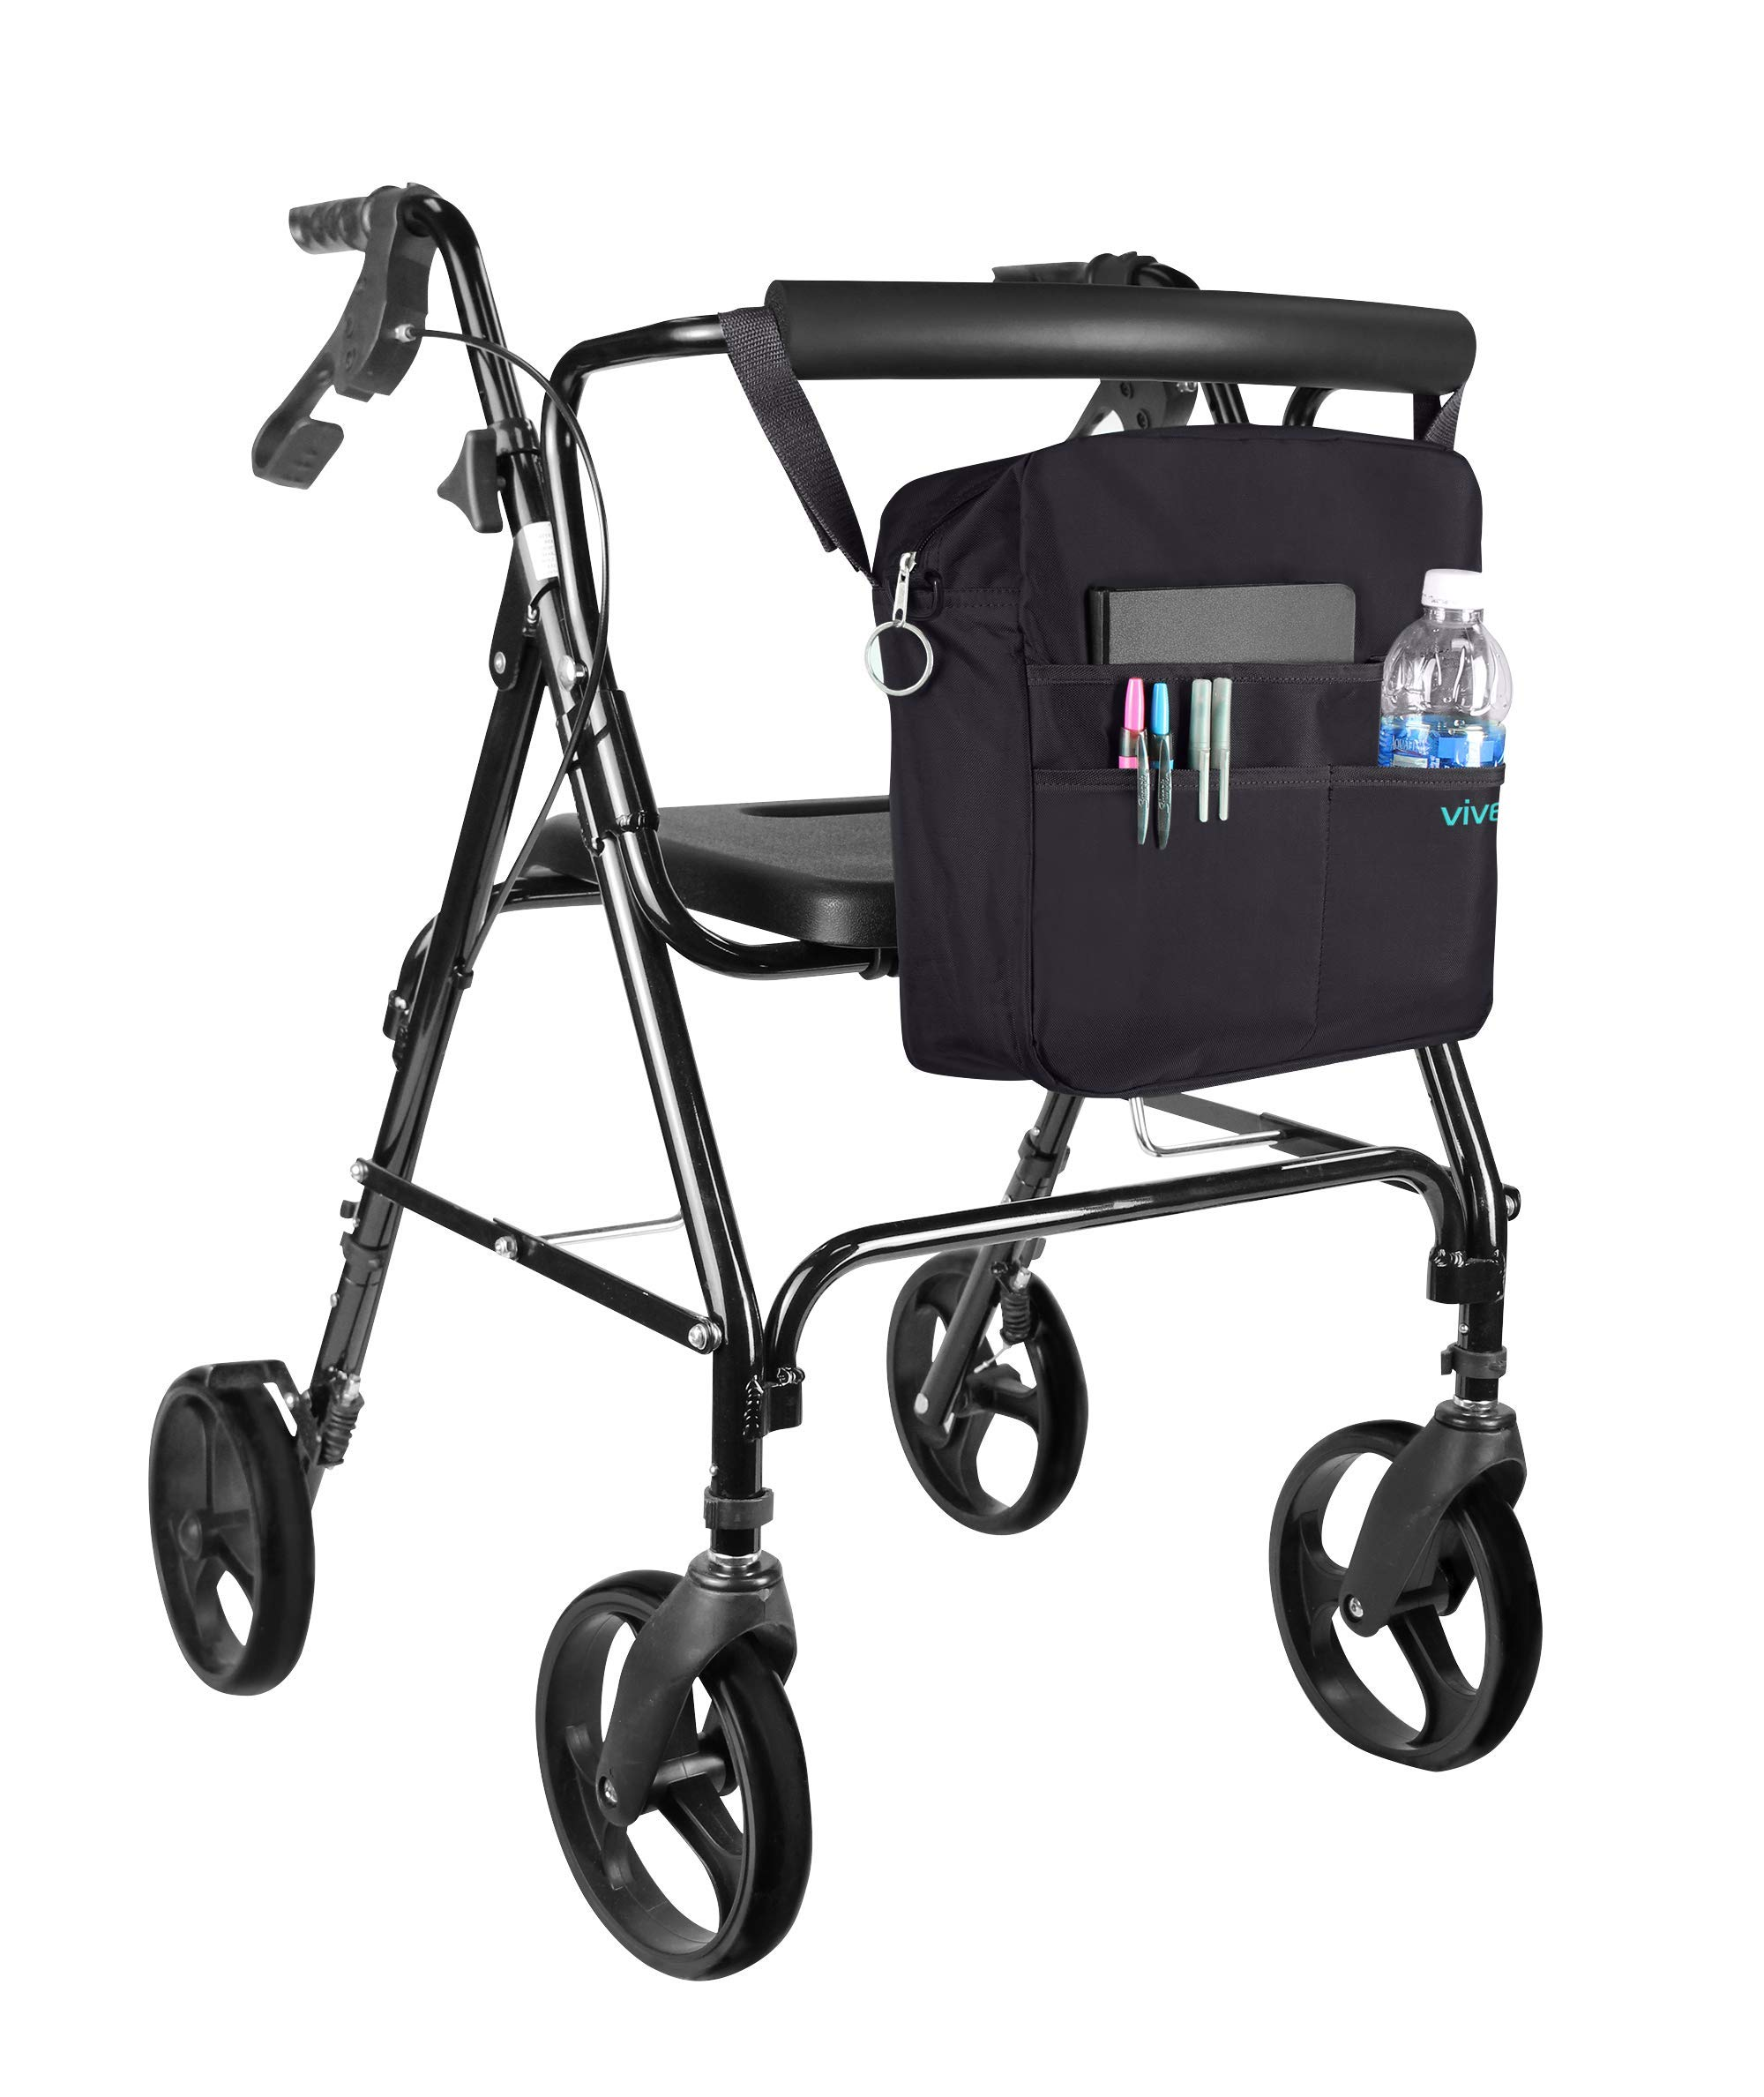 Rollator Bag by Vive - Universal Travel Tote for Carrying Accessories on Wheelchair, Rollator, Rolling Walkers & Transport Chairs - Lightweight Handicap Medical Mobility Aid, Black